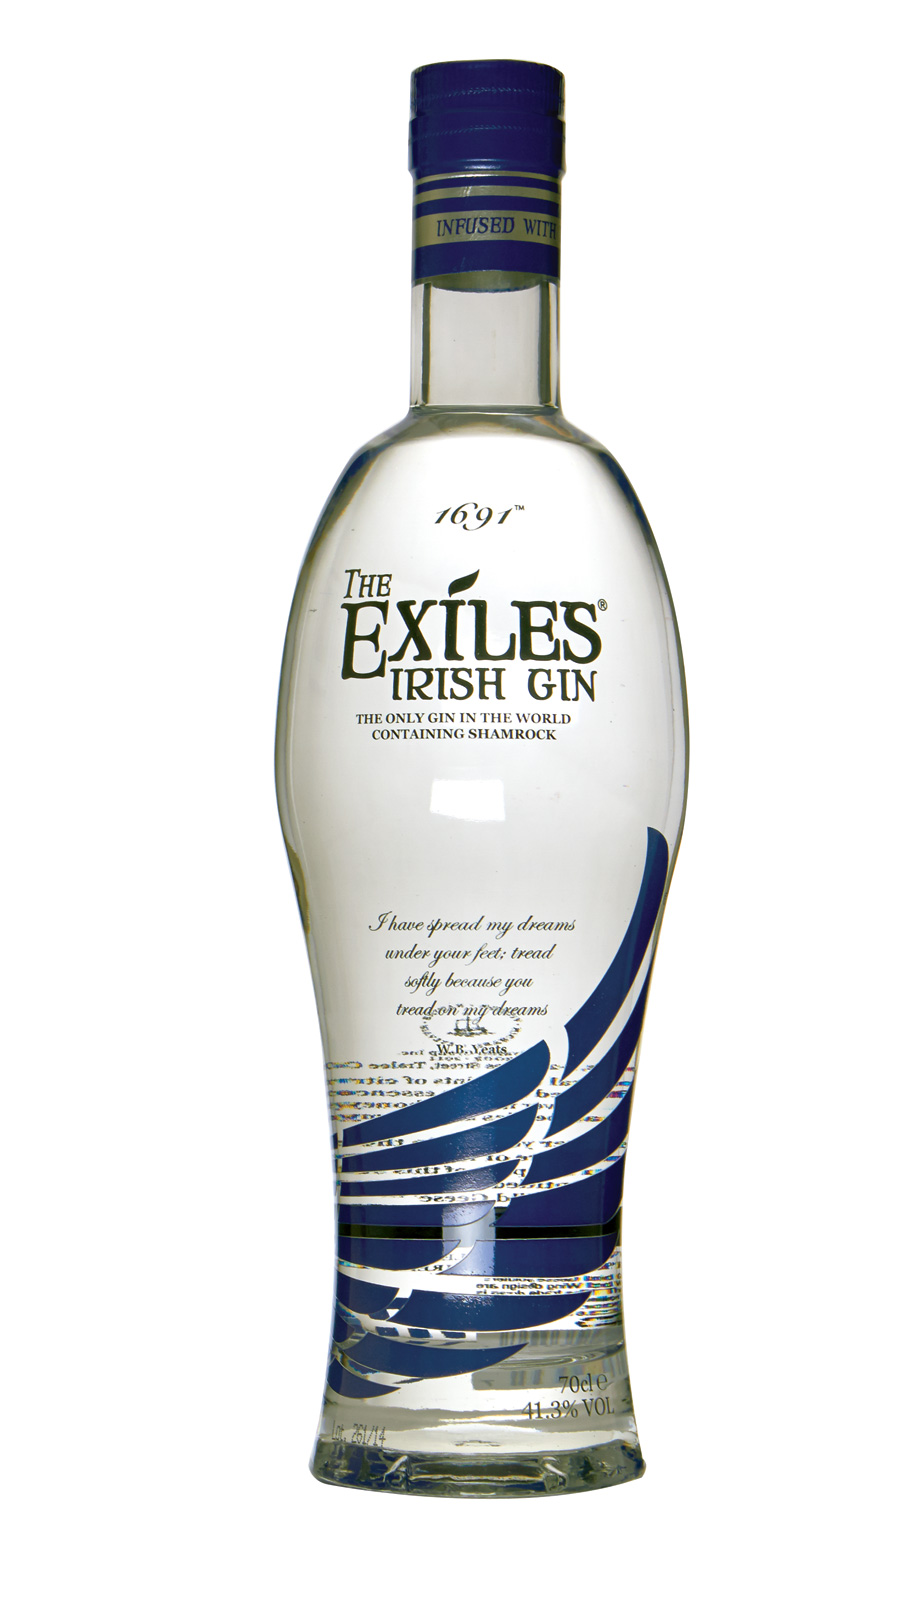 Why should you drink Exiles Irish Gin for St Patrick's Day